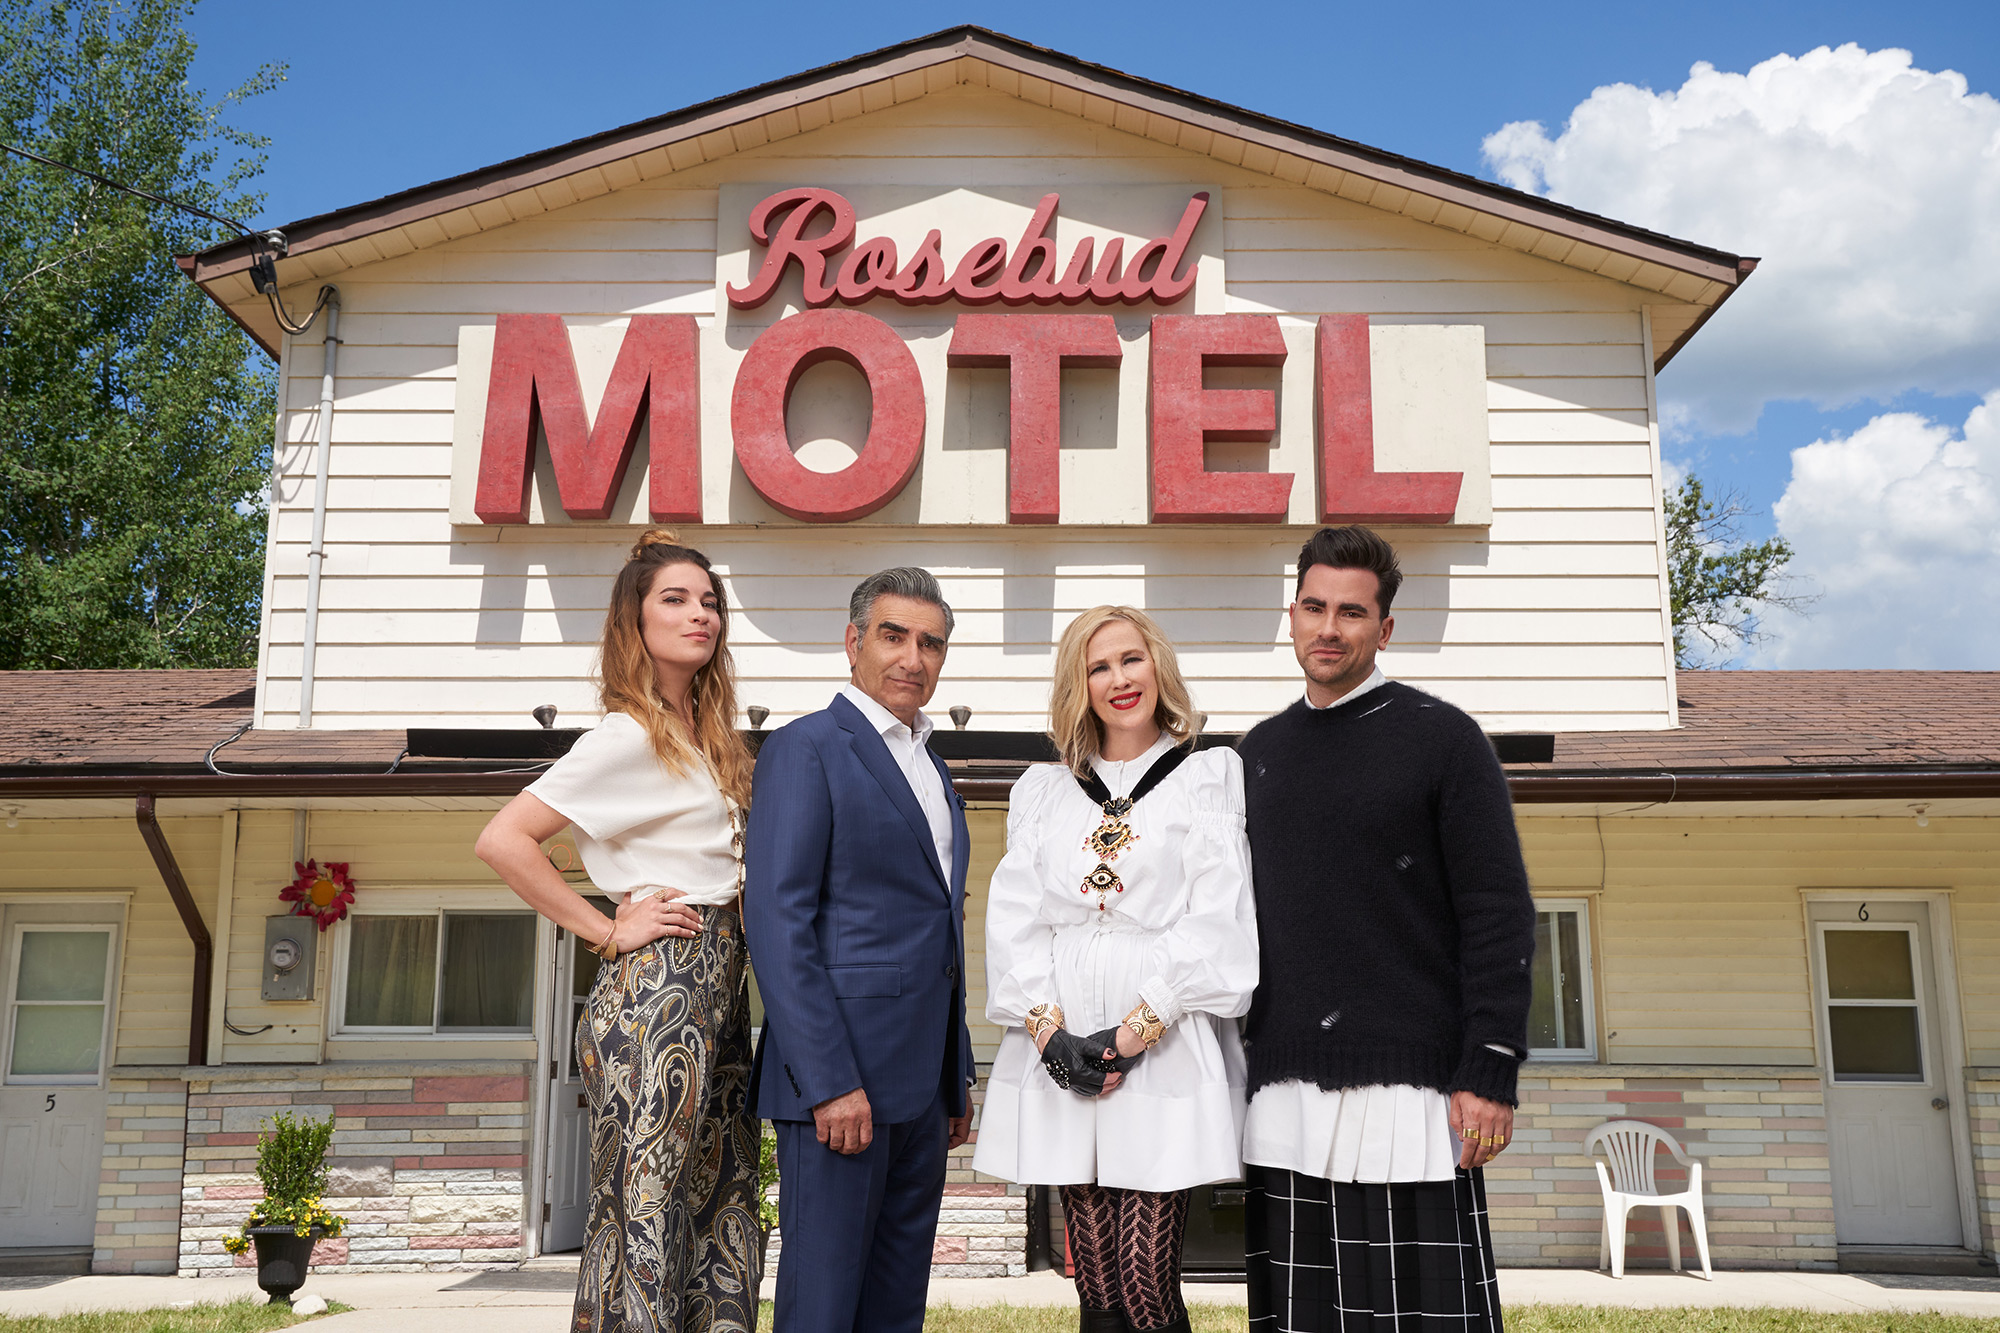 Schitt's Creek sweeps the Emmys, and heads to CW 14. Catch the Canadian-original weeknights at 10:30 (Courtesy: @SchittsCreek, Twitter)